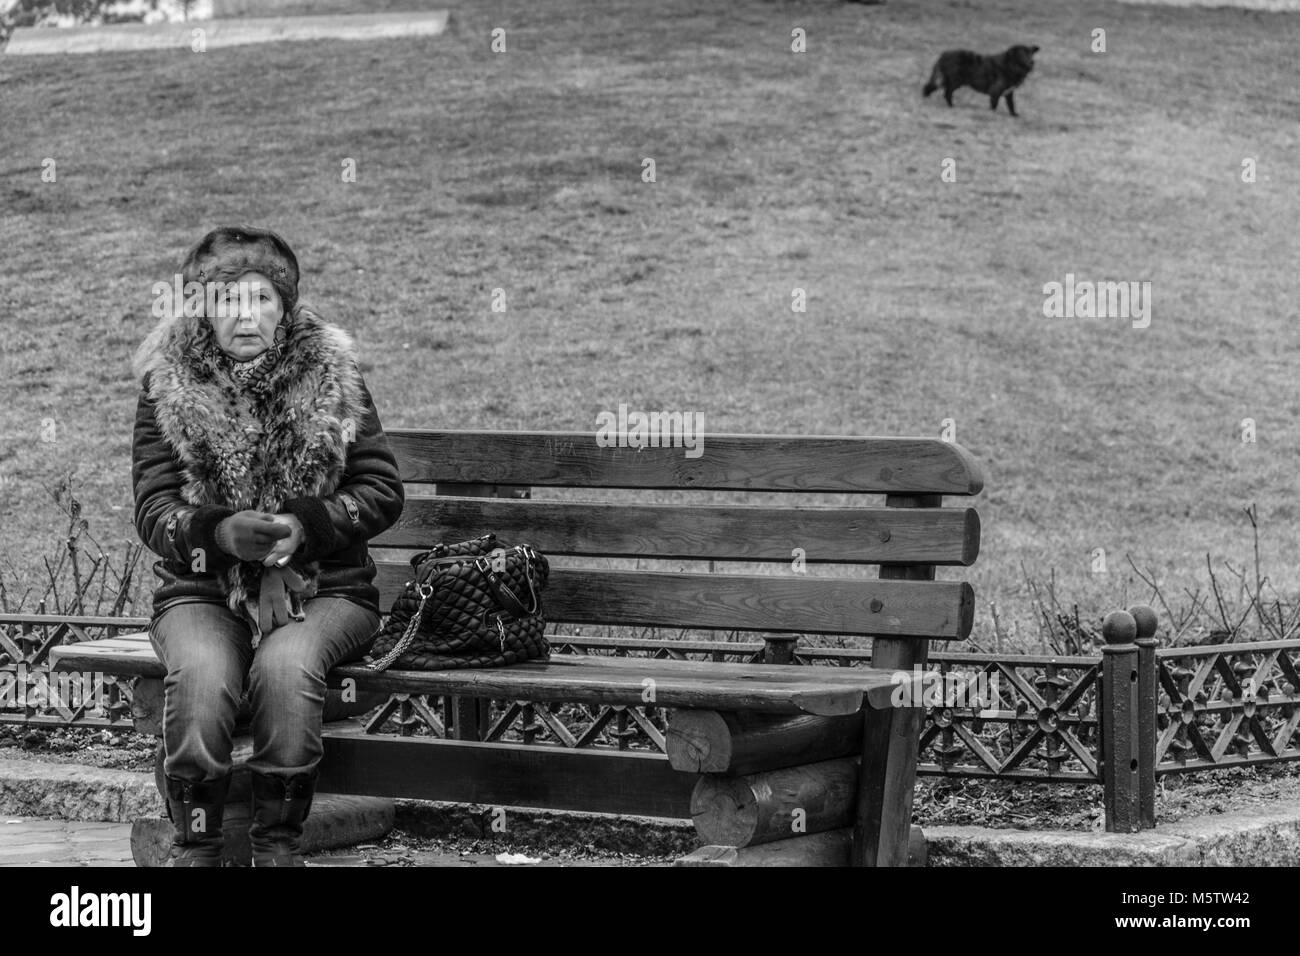 Lonely elderly woman on a bench in the park, black and white reportage photograph - Stock Image